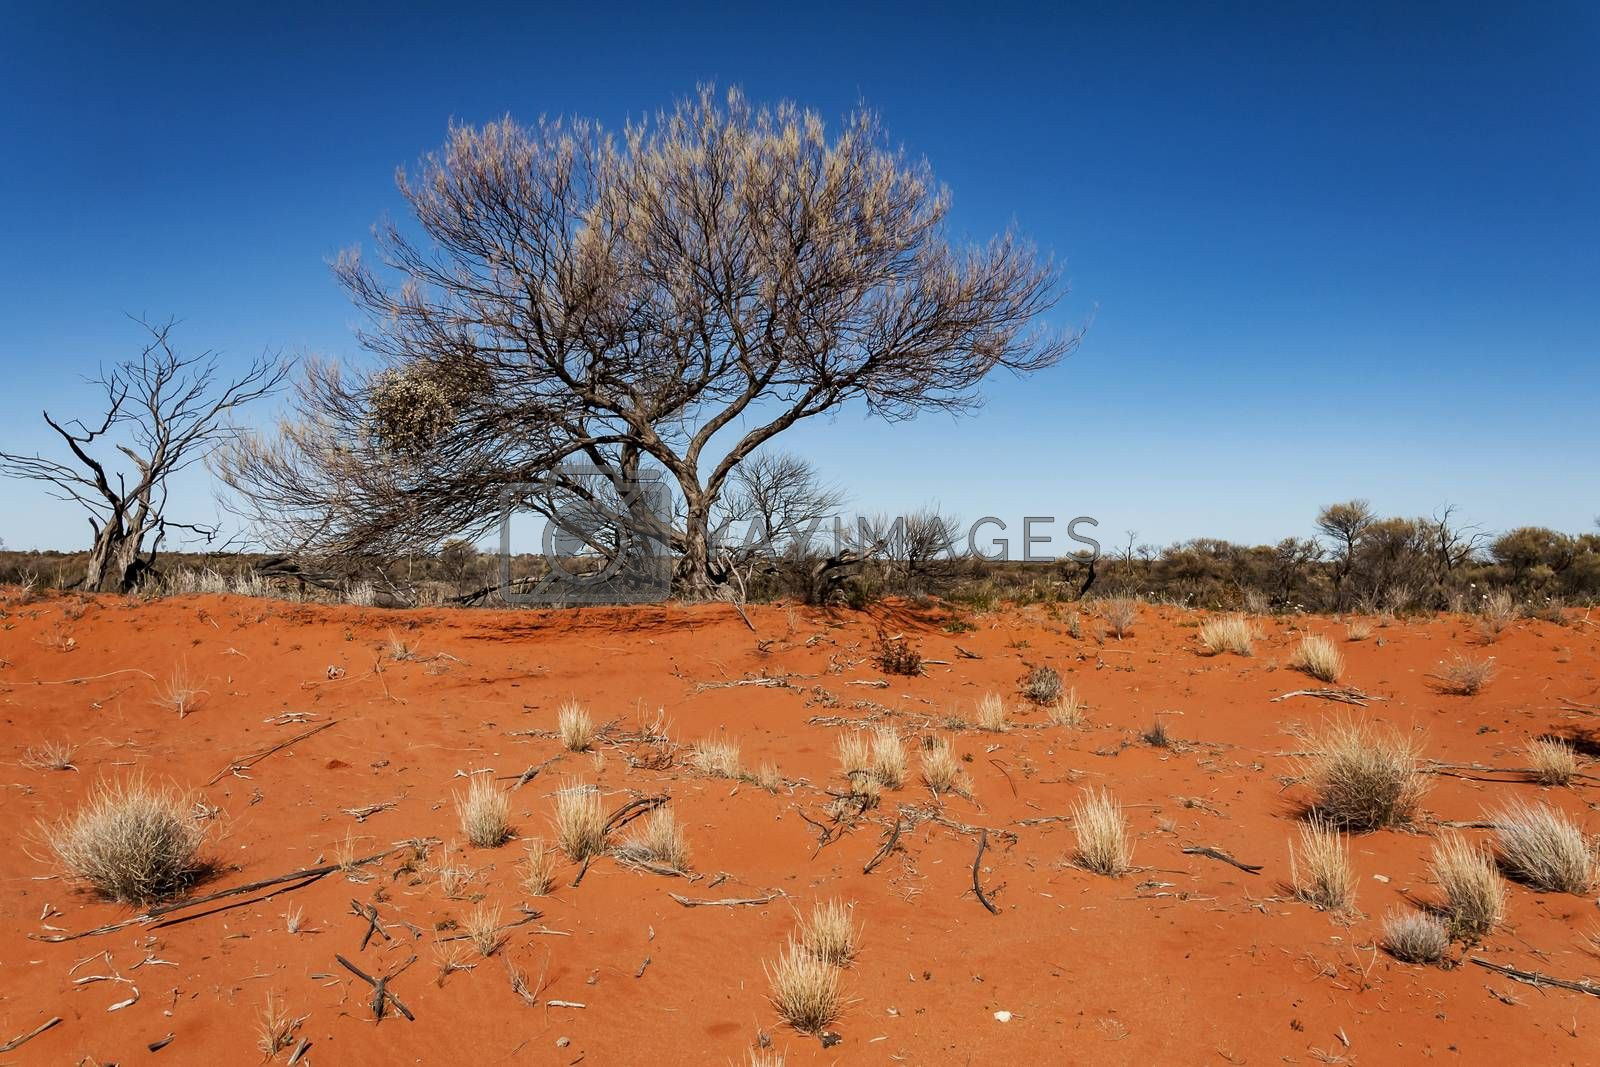 wild landscape in the Australian outback, the Red Center in south Australia